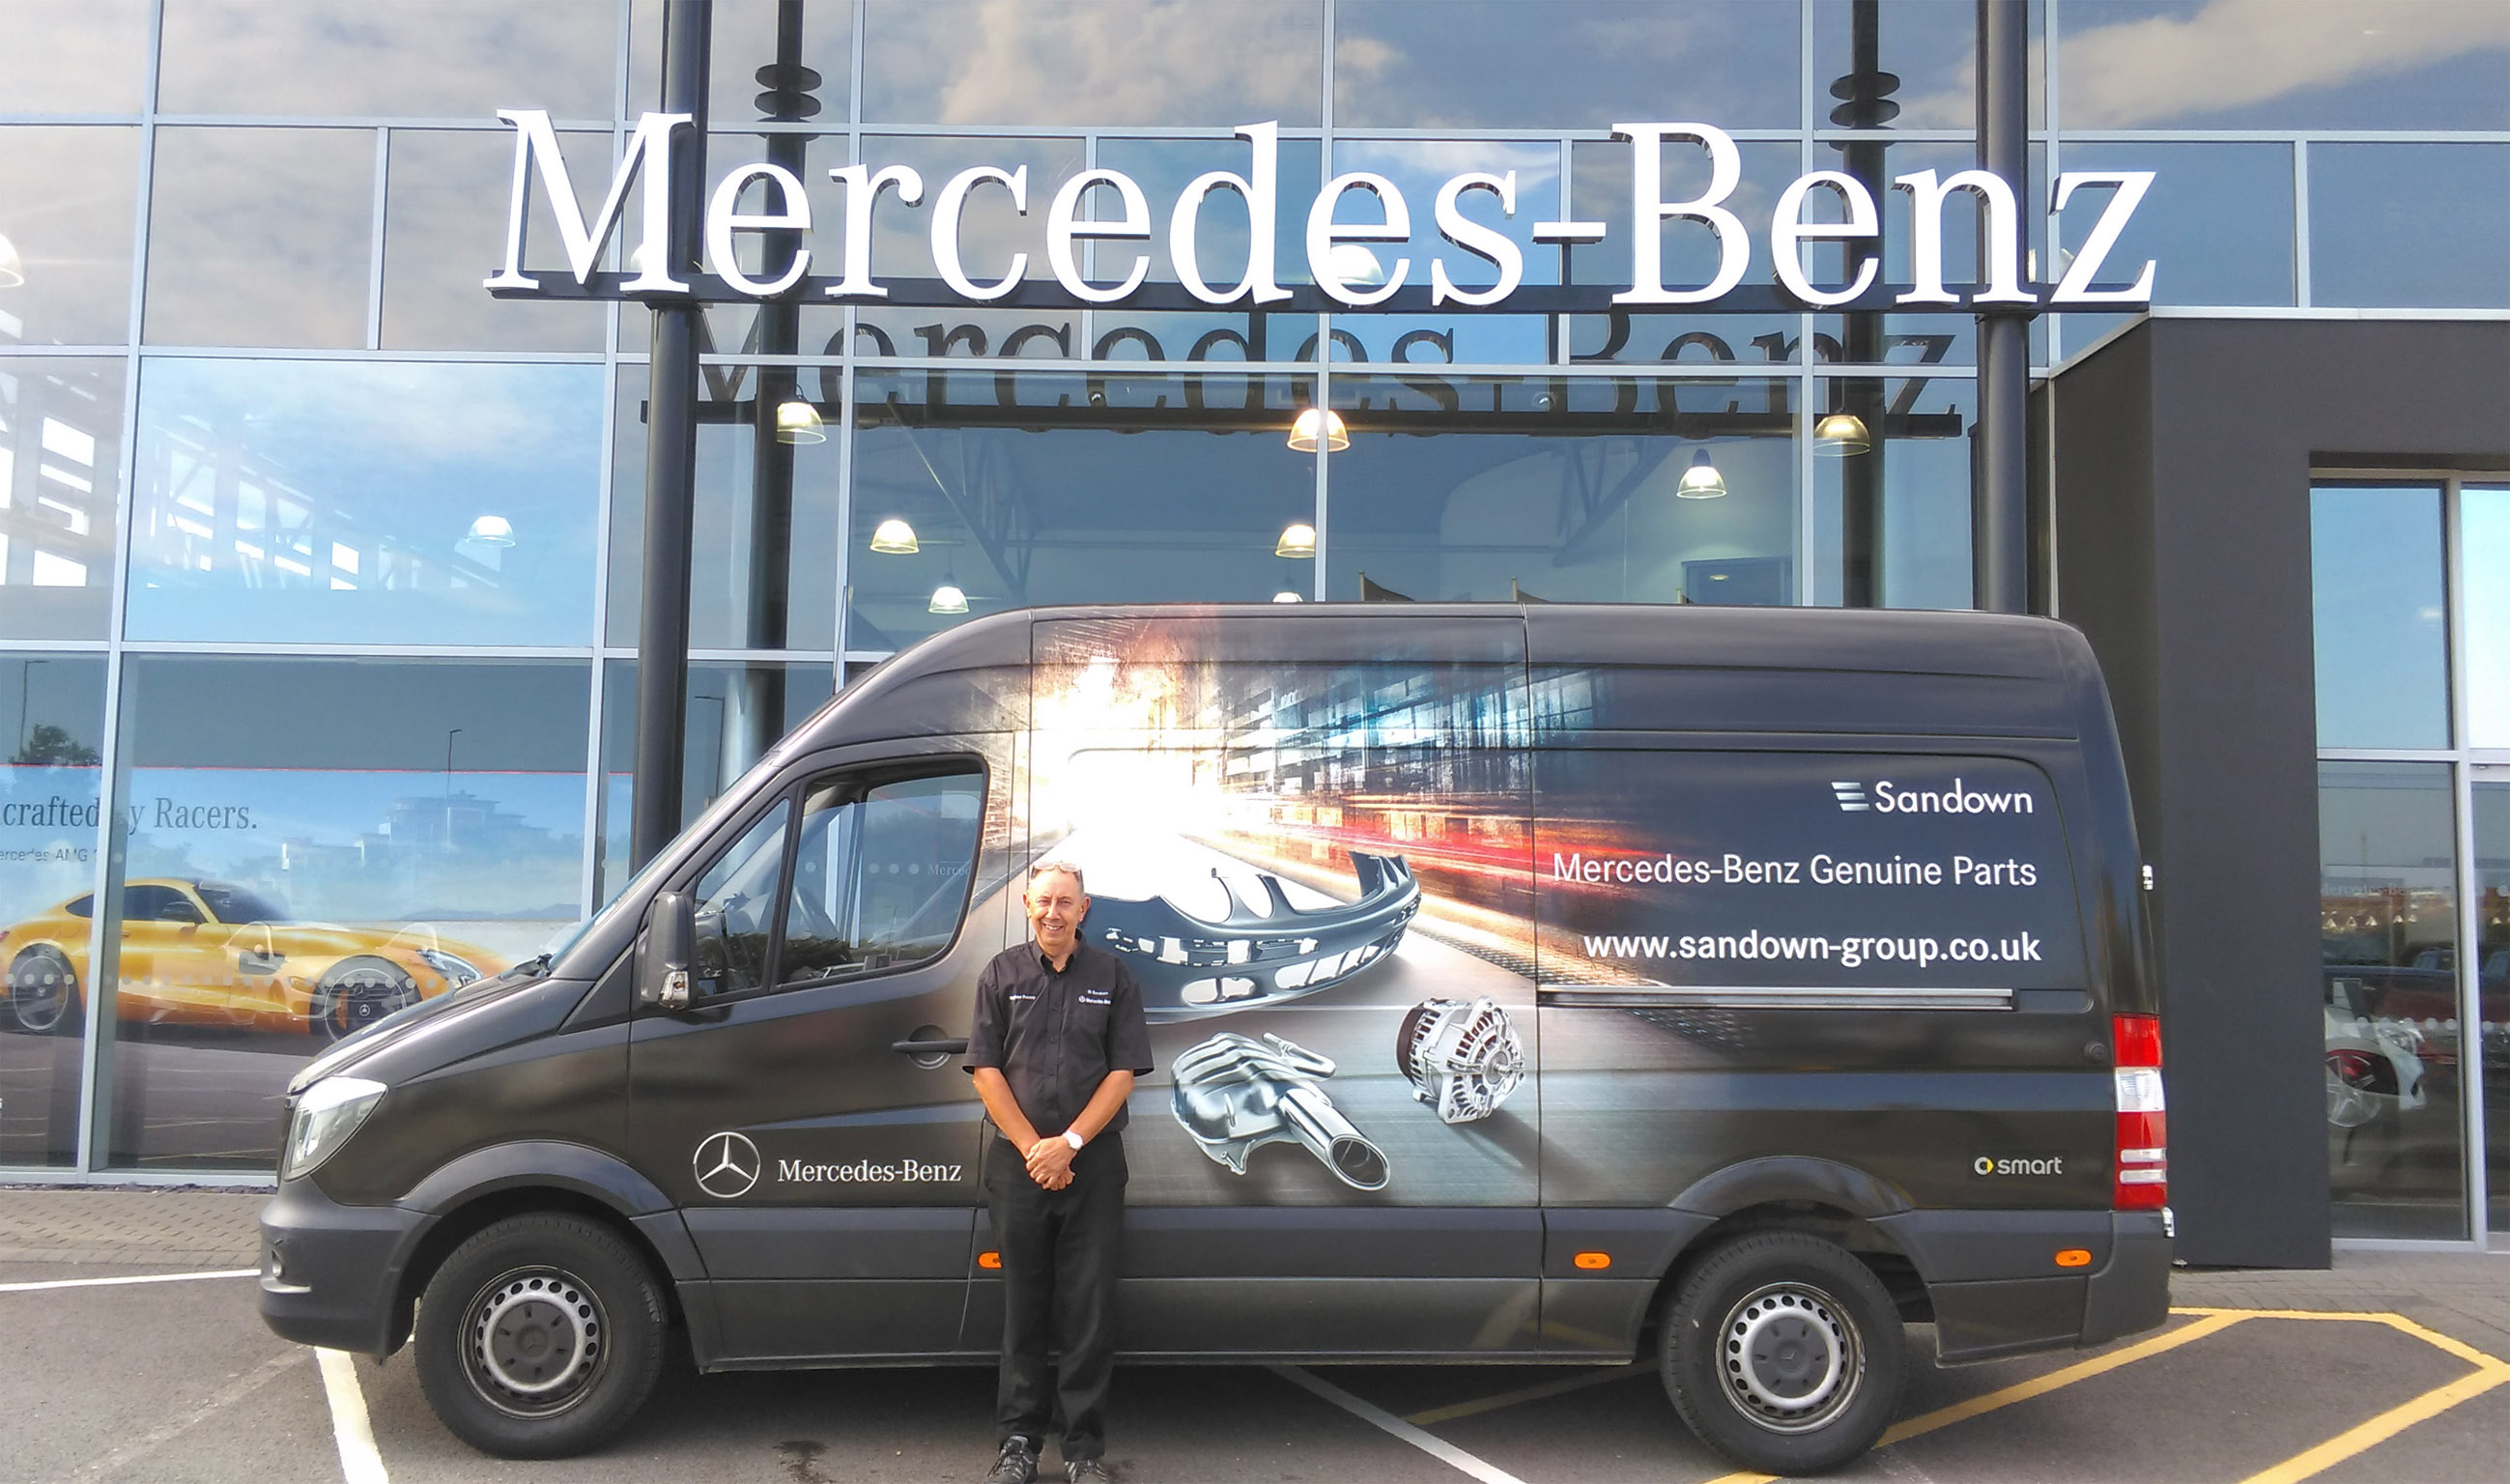 Merc Parts Delivered Smart With Maxoptra